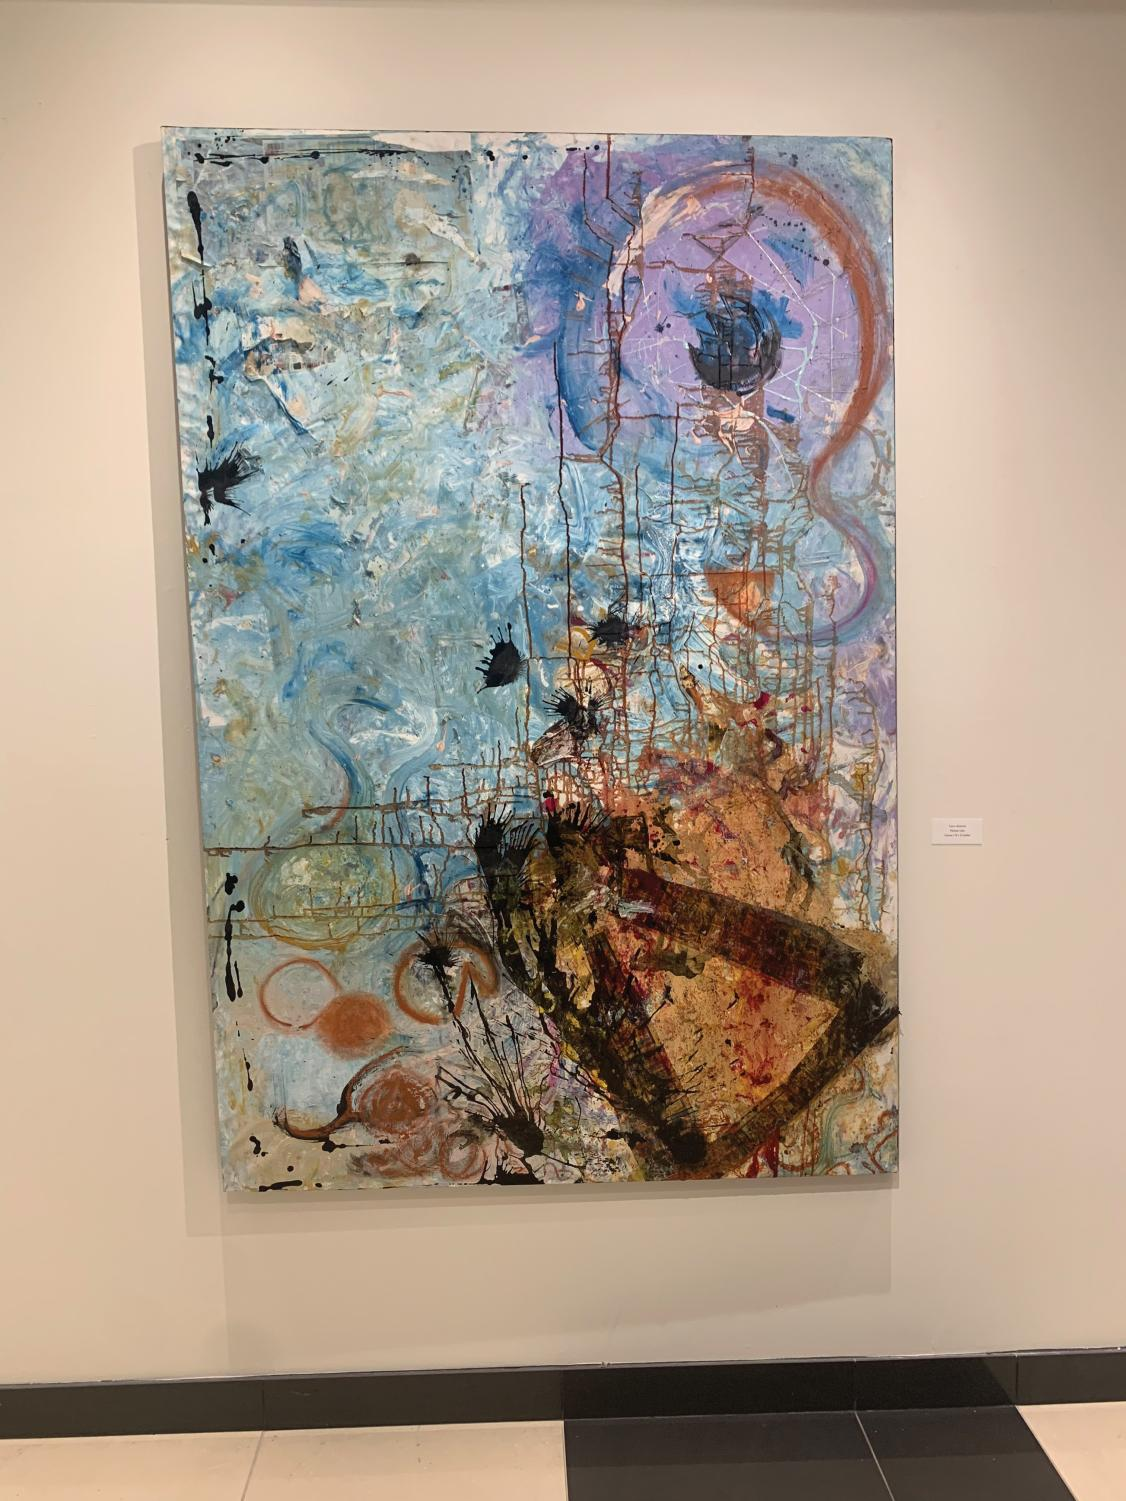 According to the William Rolland Gallery of Fine Art website, Lucca Drake Aparicio was seeking a career as an artist or a curator. This exhibit offered the opportunity to view his work and tell stories about his life.